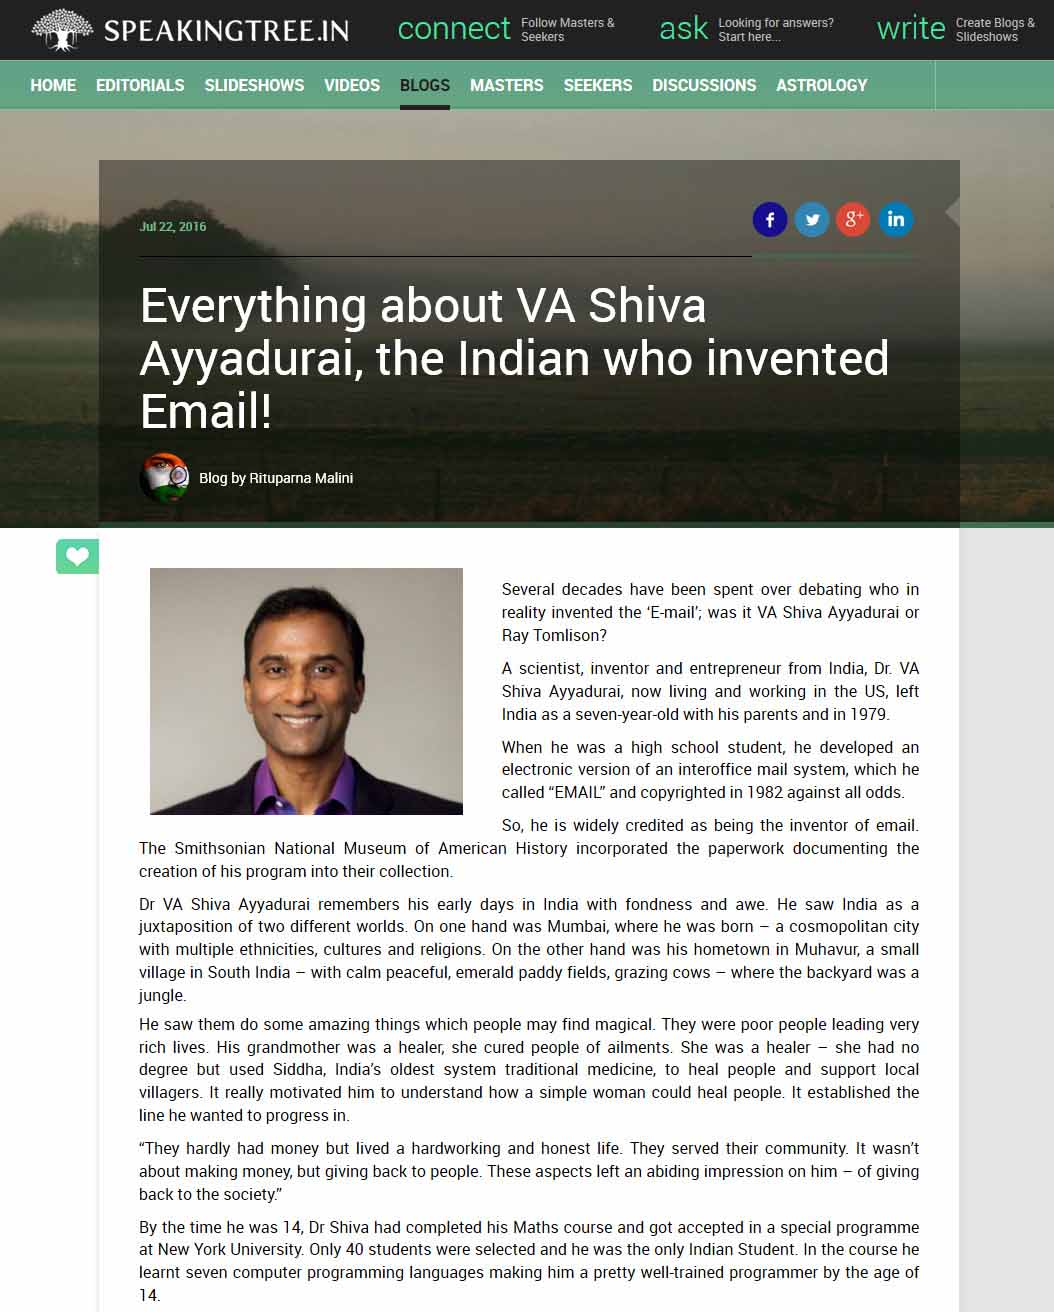 Everything About VA Shiva Ayyadurai, The Indian Who Invented Email!